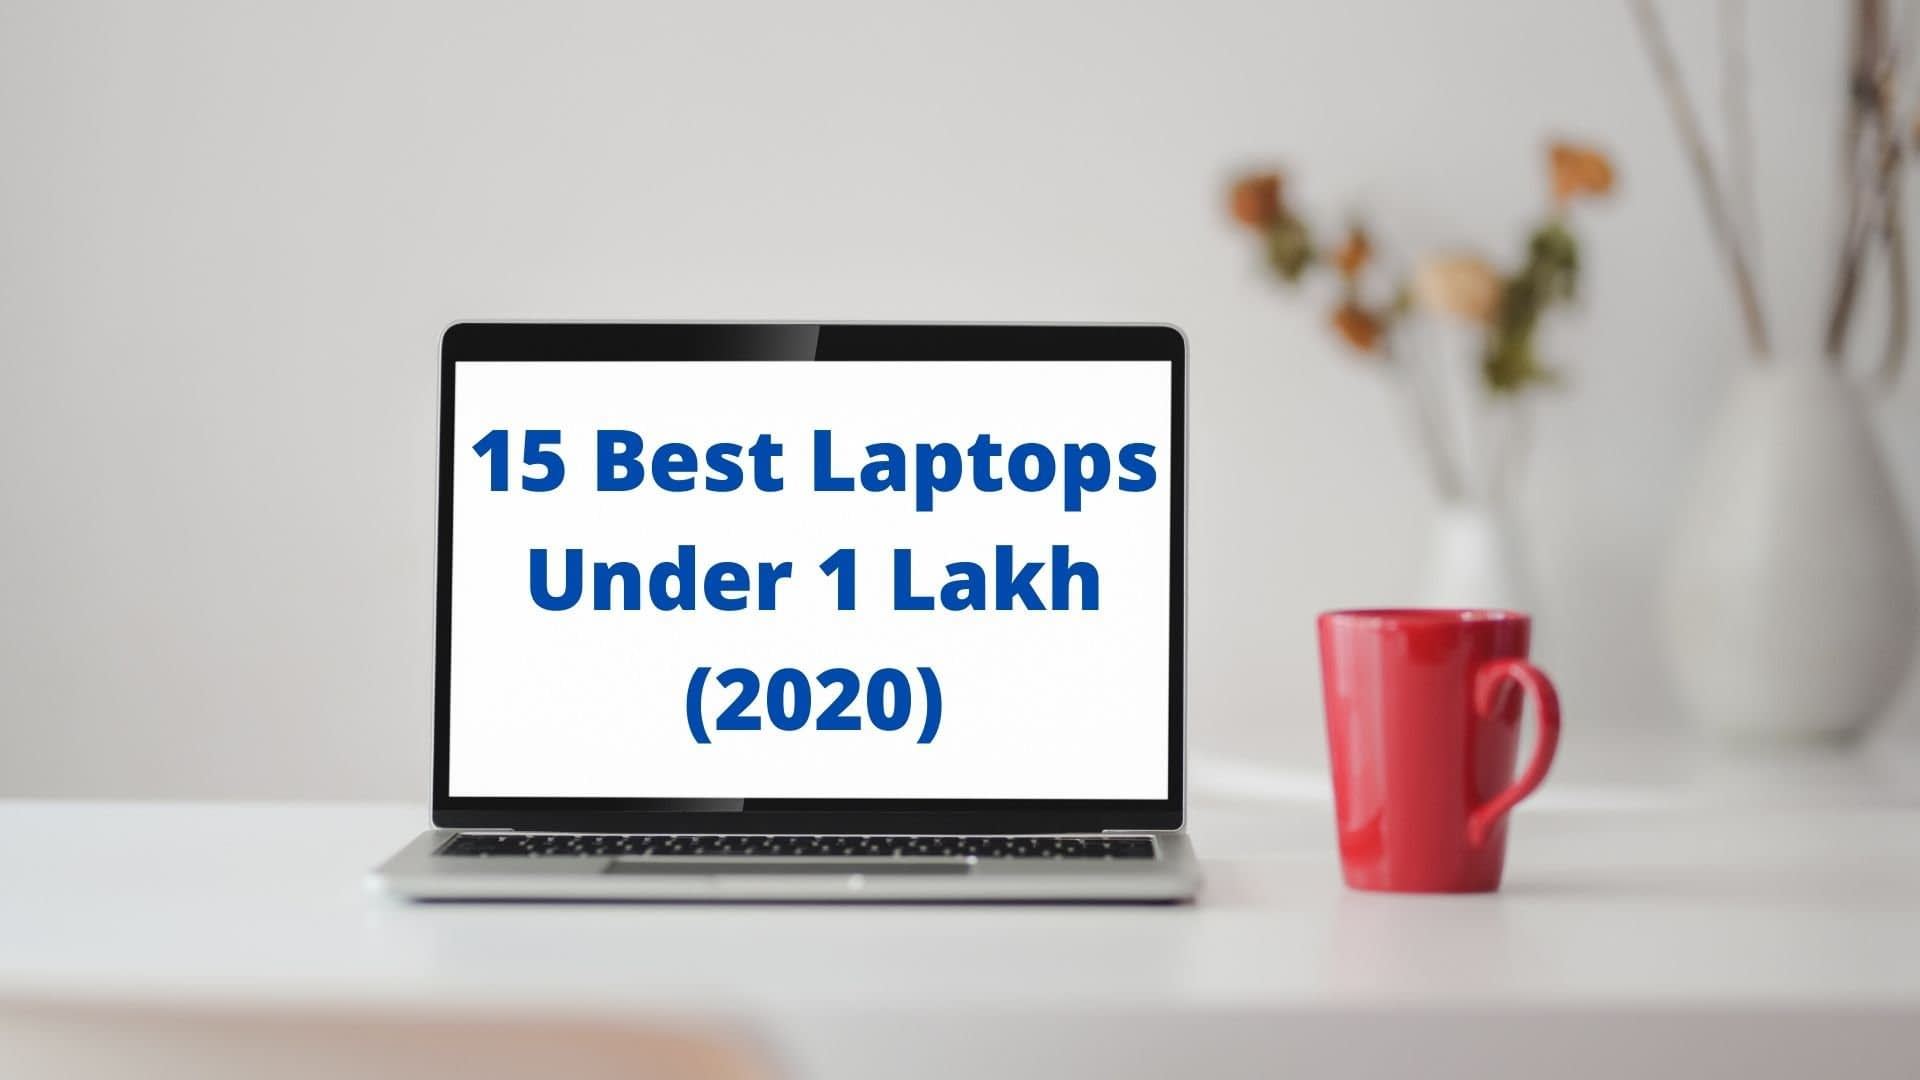 Best Laptops Under 1 Lakh in India (2020)